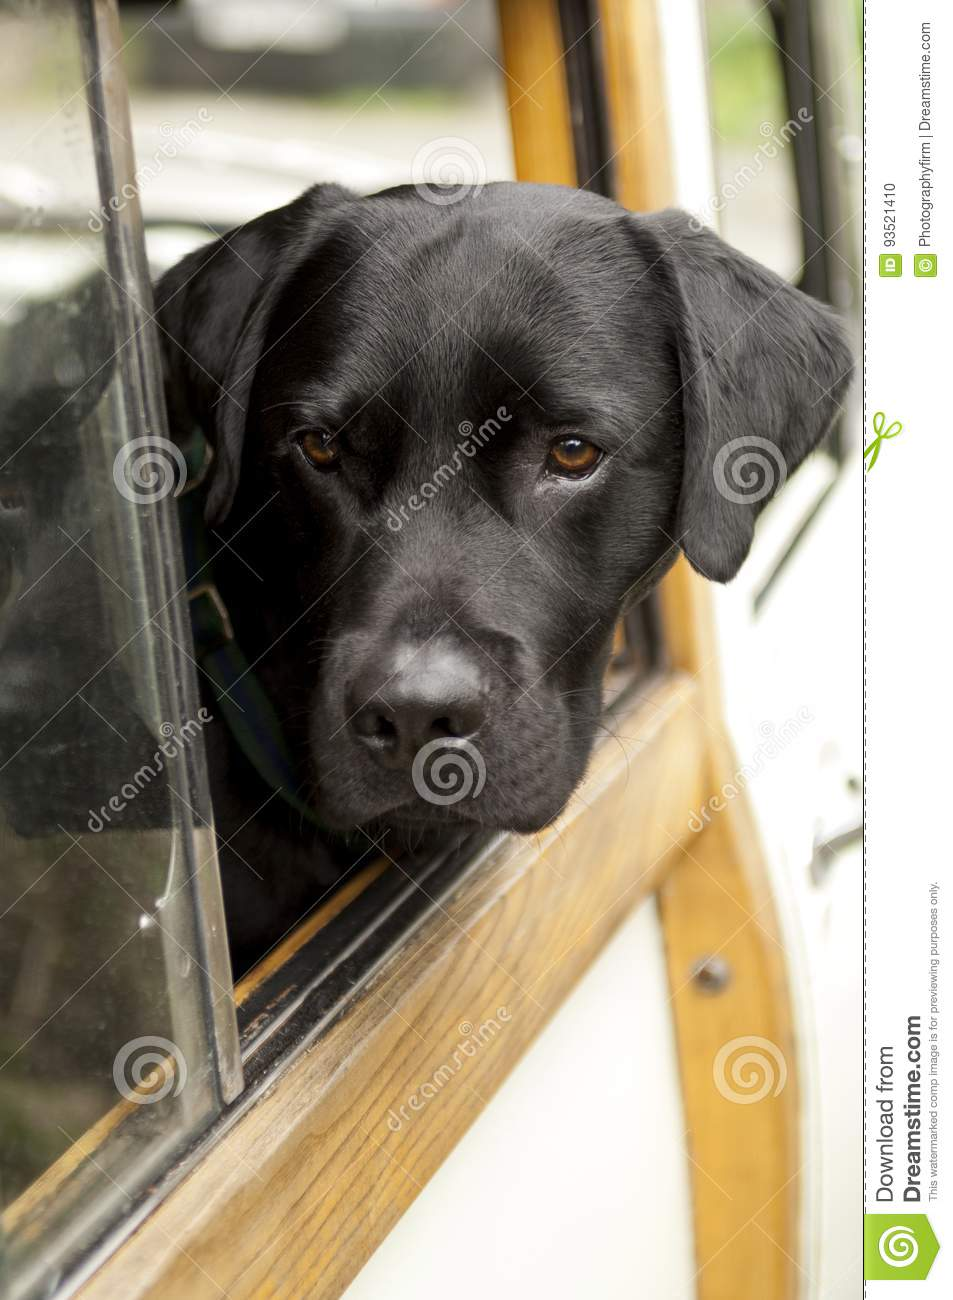 Head of Black Dog Sticking Out of Car Window